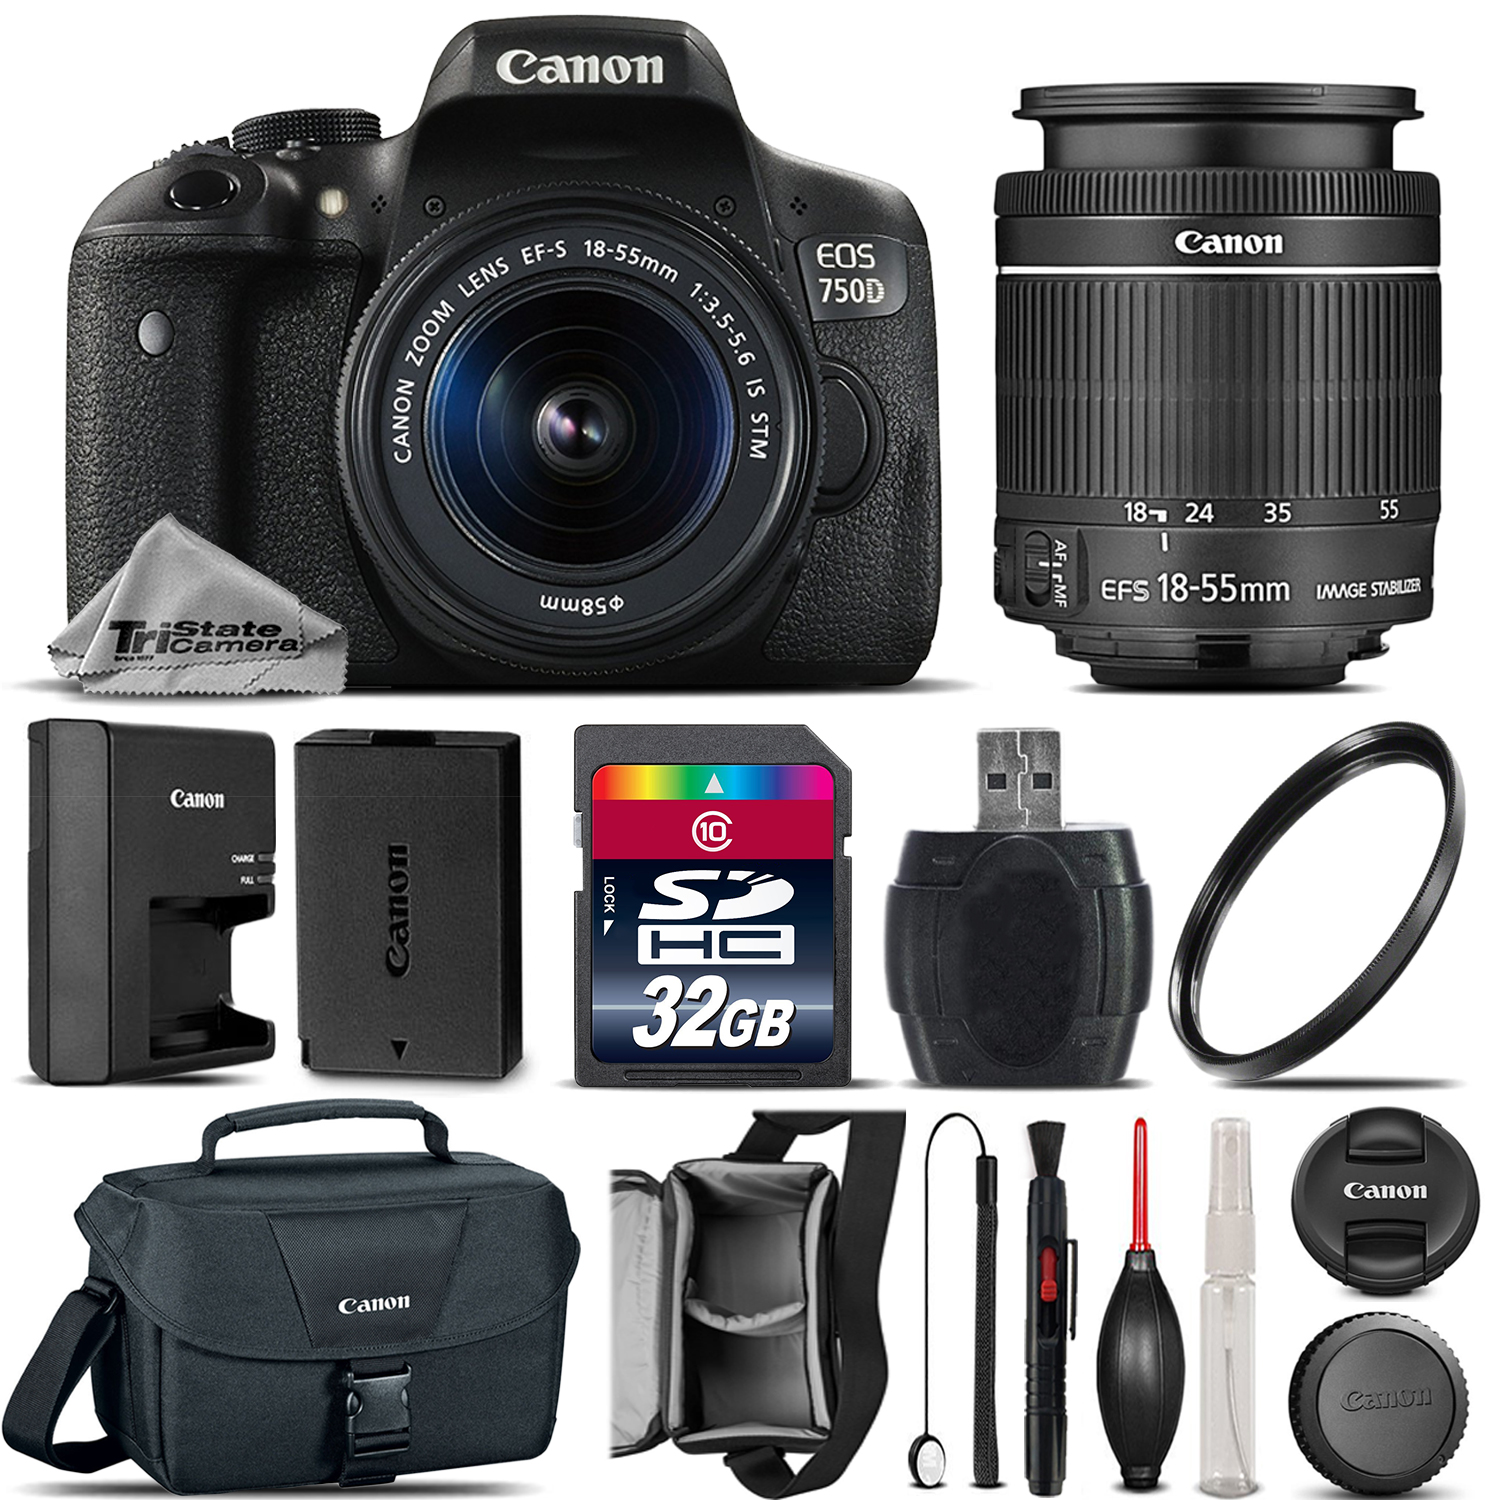 canon eos rebel 750d /t6i camera + 18-55mm is stm lens + canon case - 32gb kit